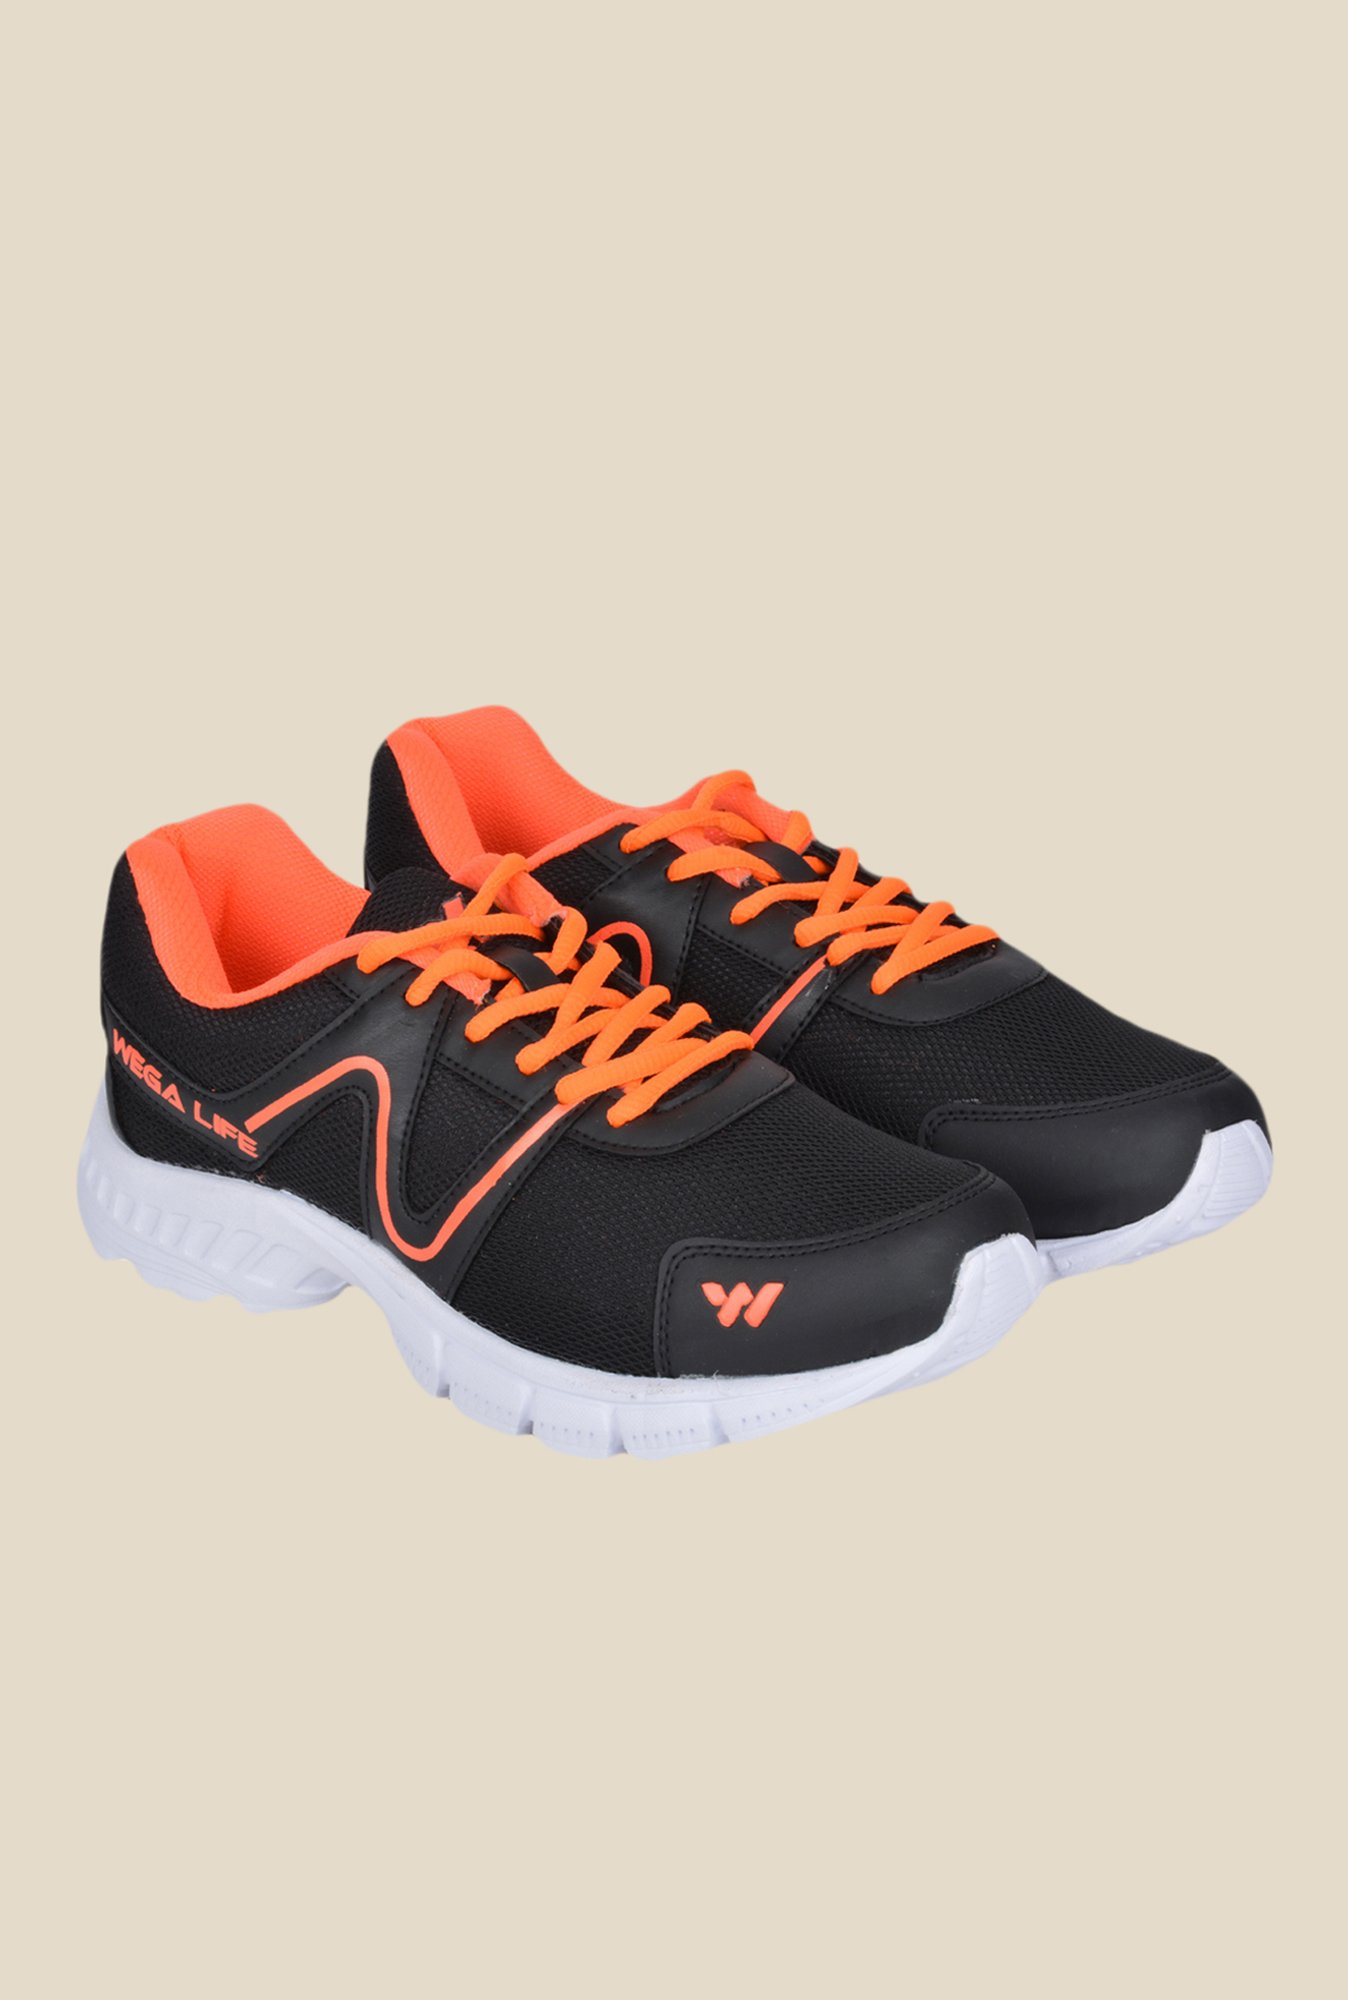 Wega Life Air Black & Orange Running Shoes